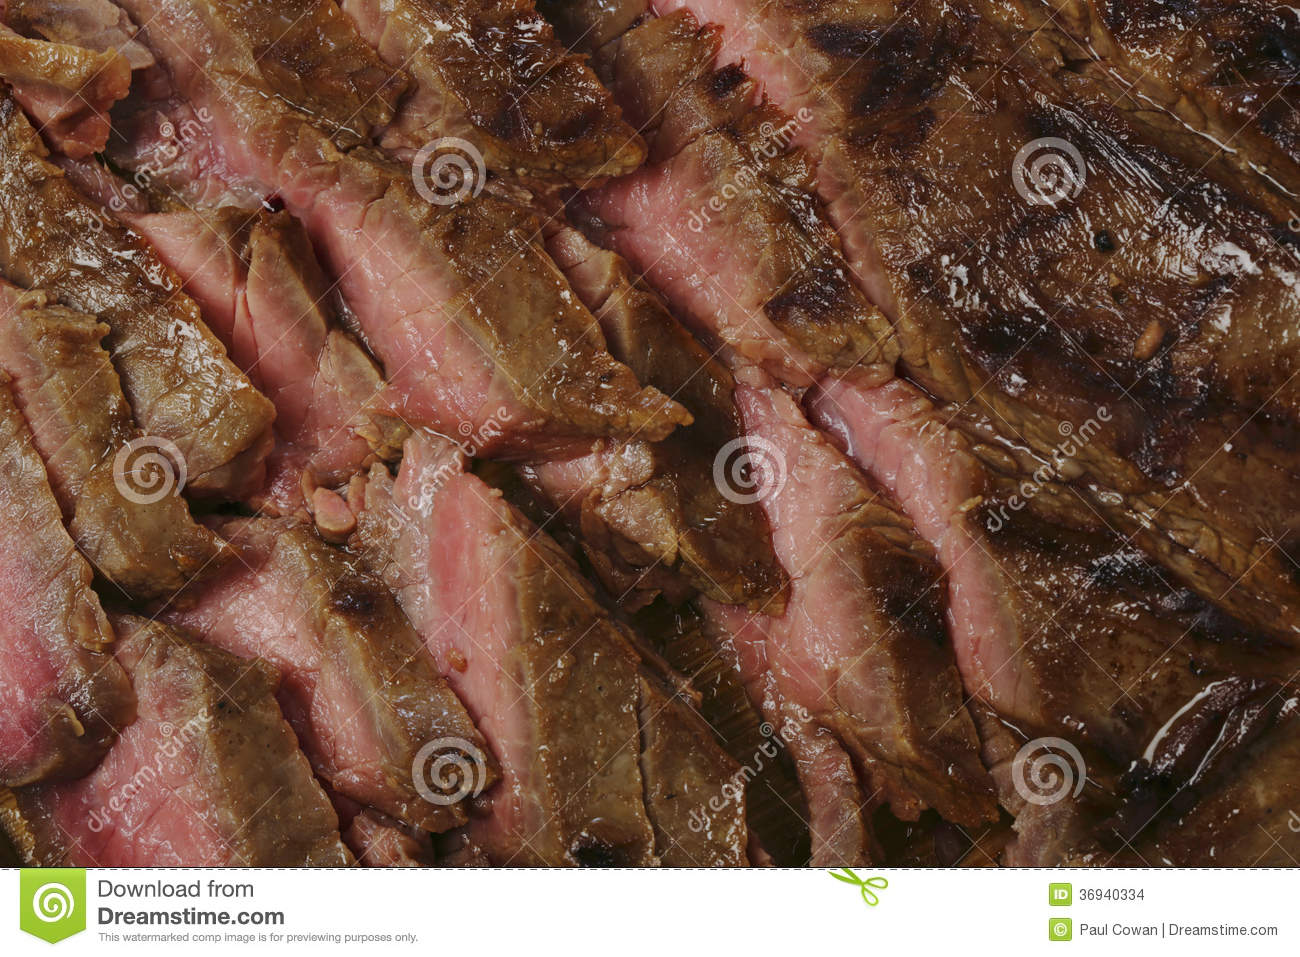 ... grilled flank beef steak, or London broil as it is known in the US